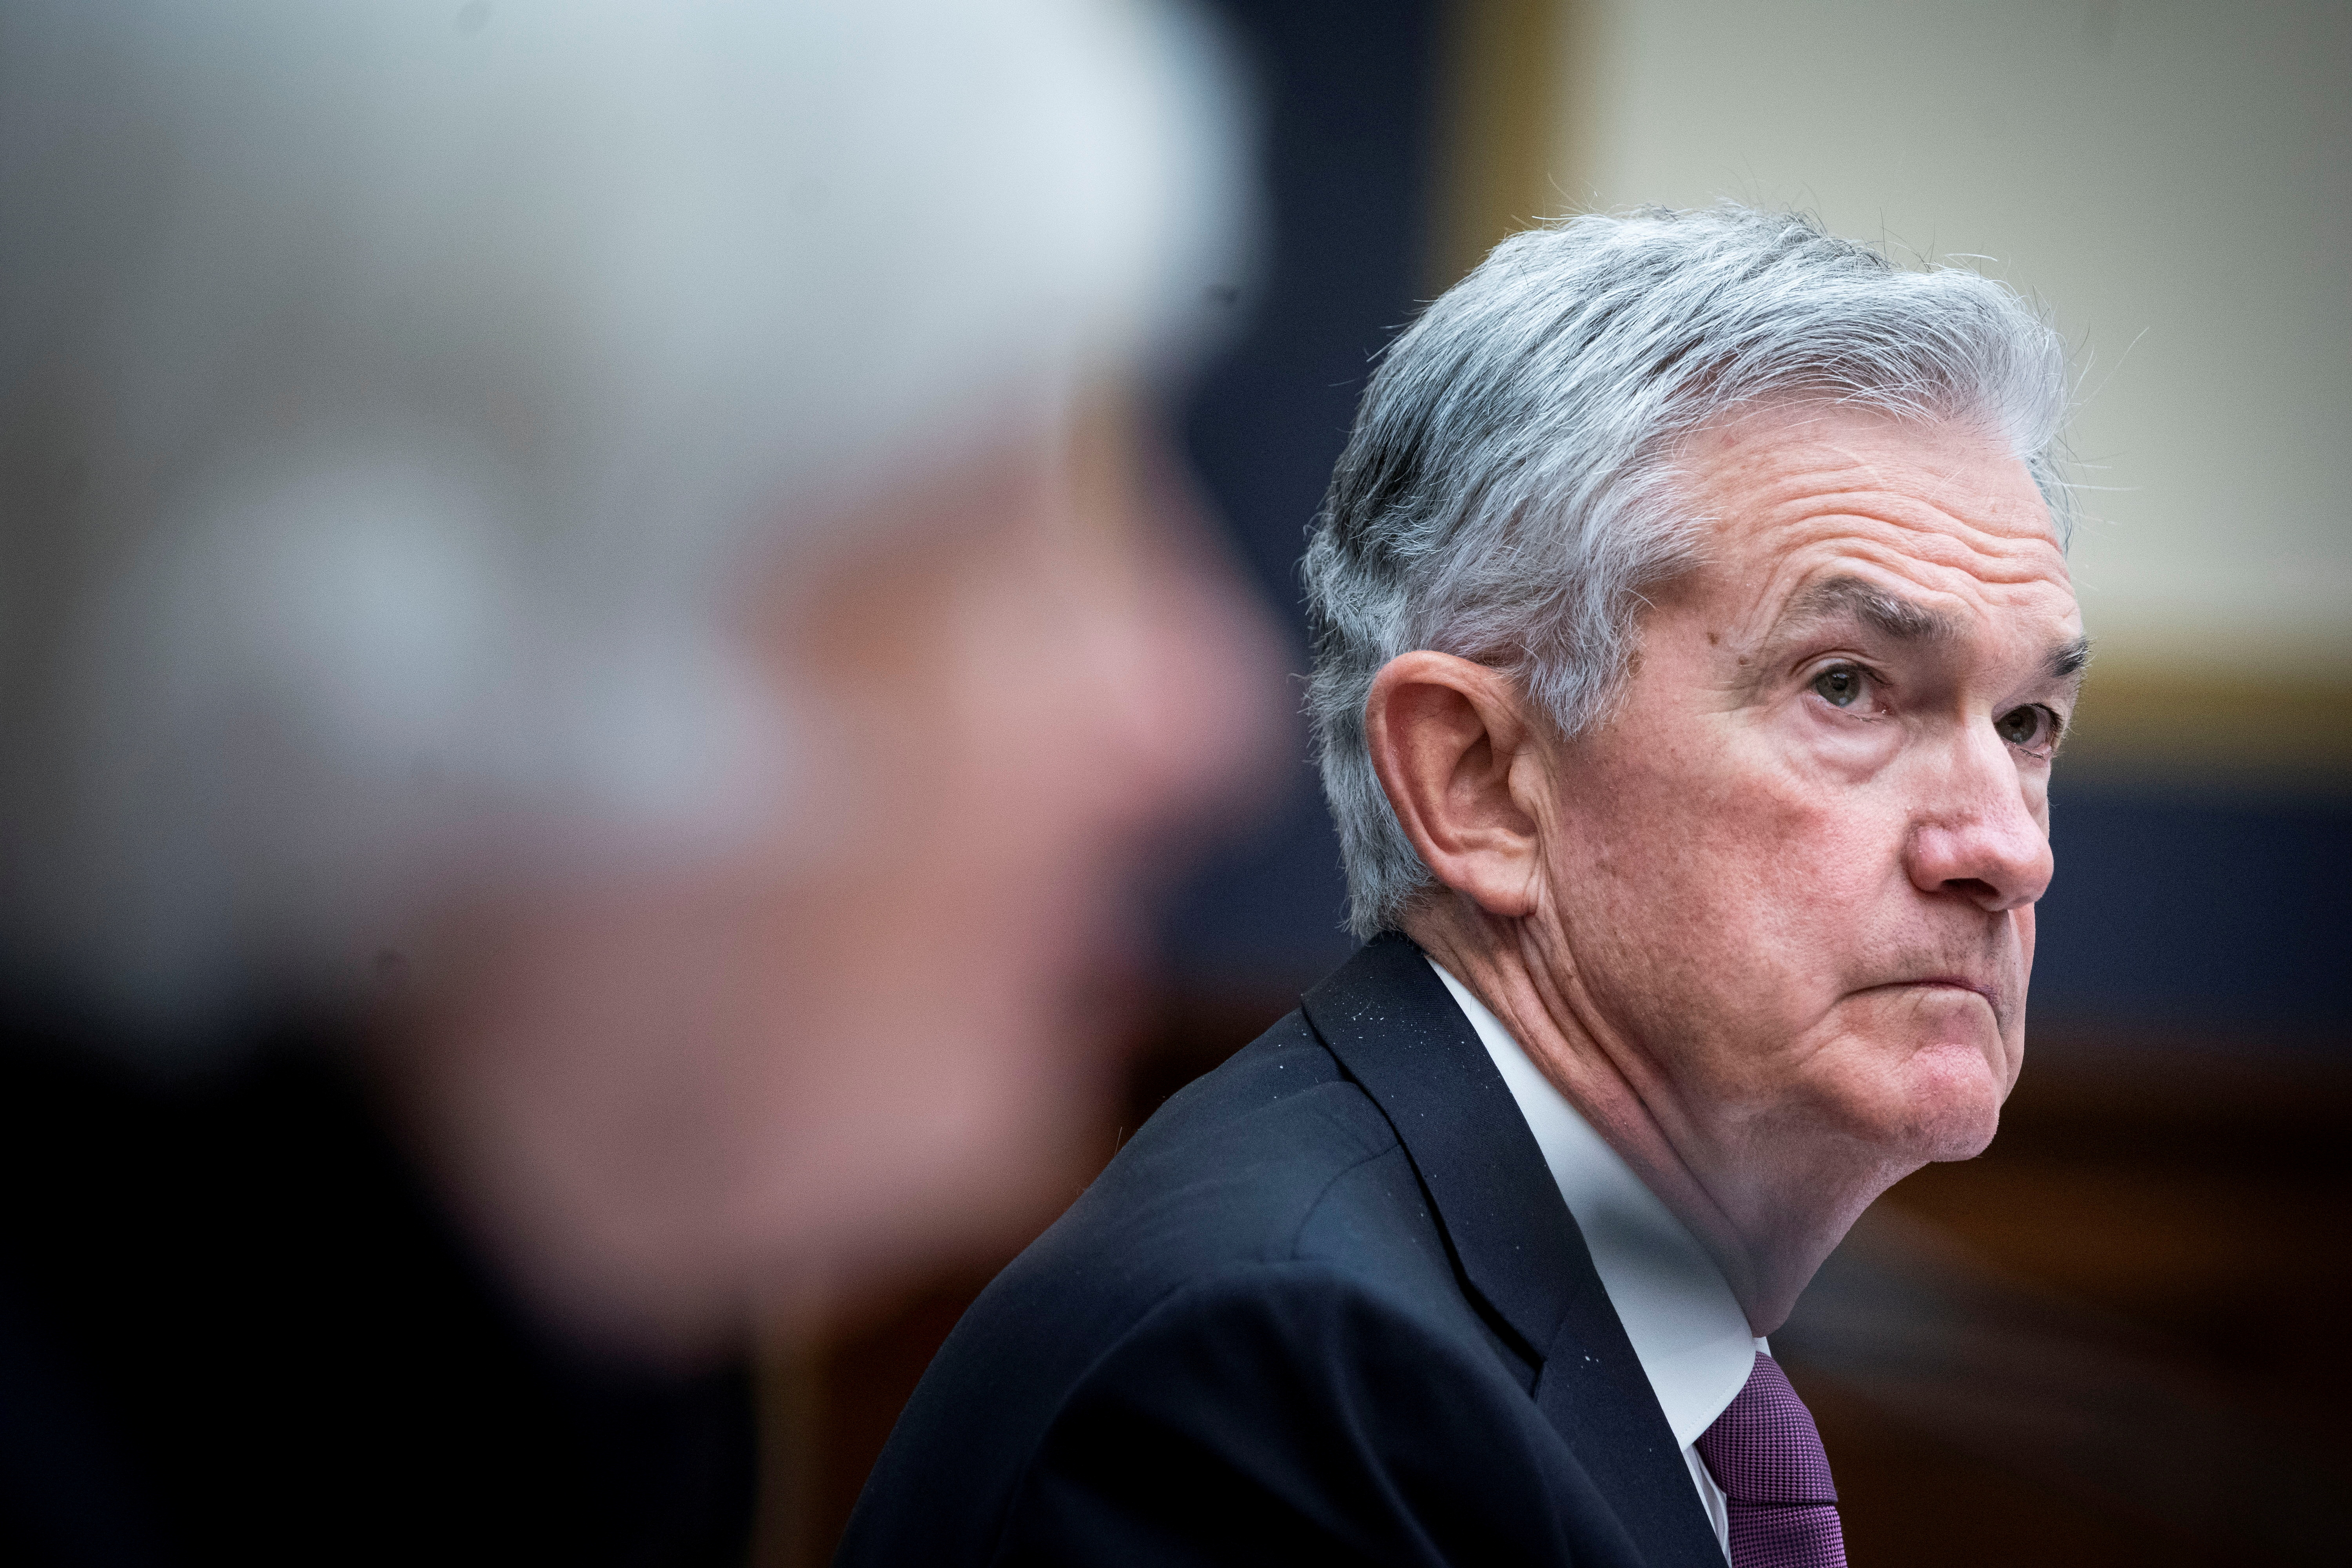 Federal Reserve Chair Jerome Powell attends the House Financial Services Committee hearing on Capitol Hill in Washington, U.S., September 30, 2021. Al Drago/Pool via REUTERS